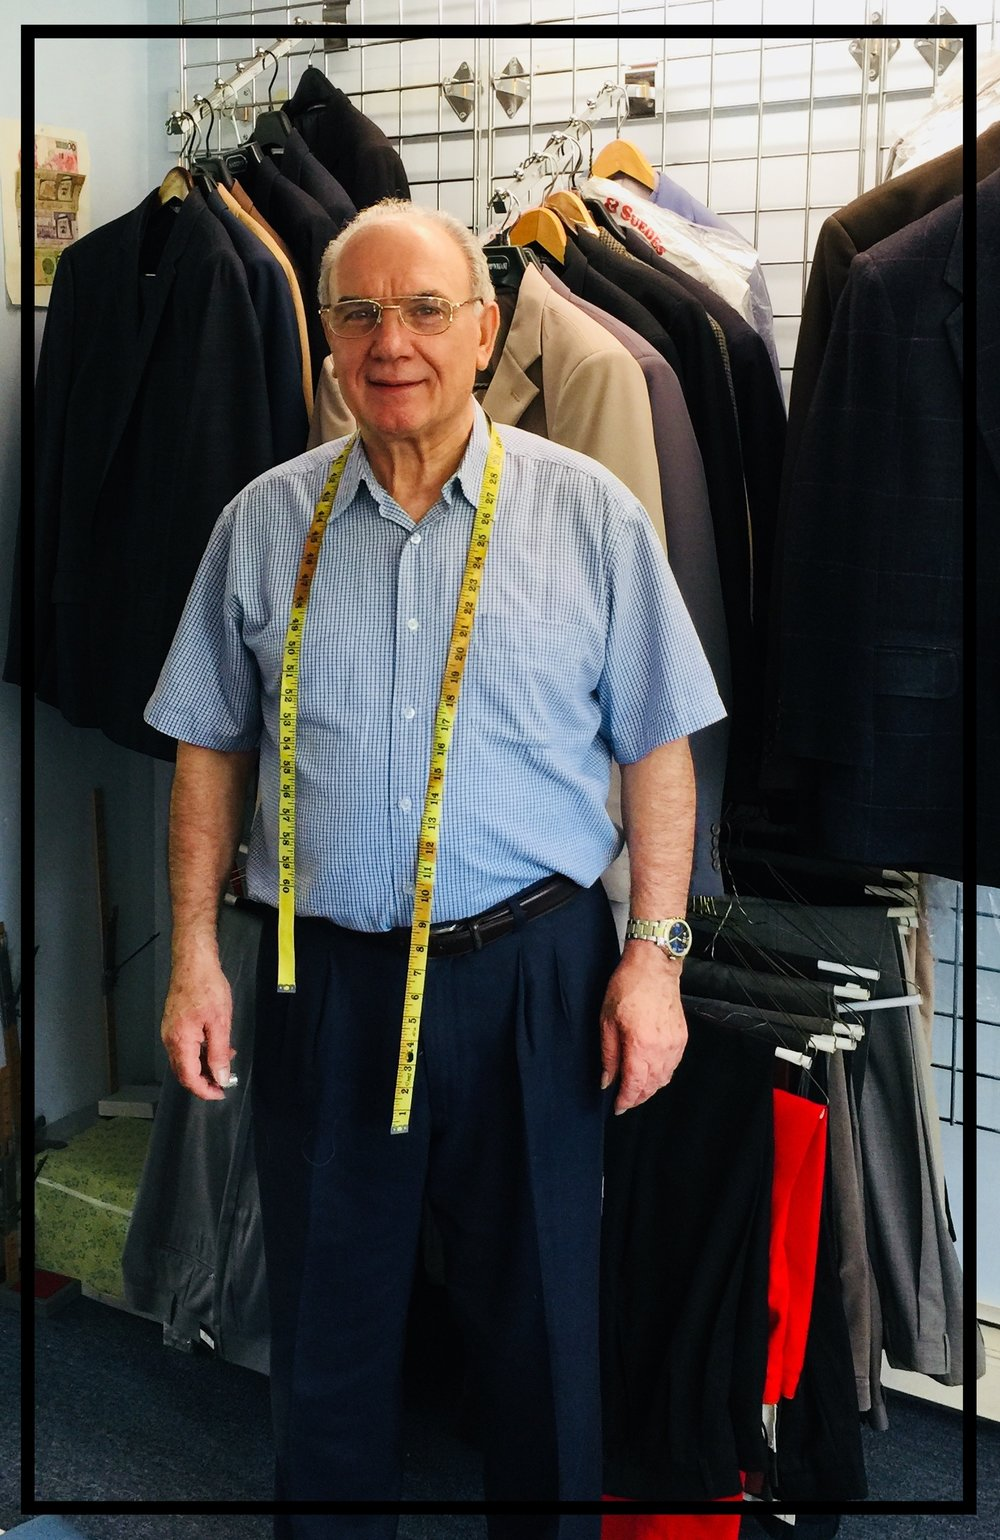 Welcome to our site! - Giuseppe the Tailor has over 40 year experience in the business.  He learned the trade in Italy and brought his expertise back to America and has been in business ever since.